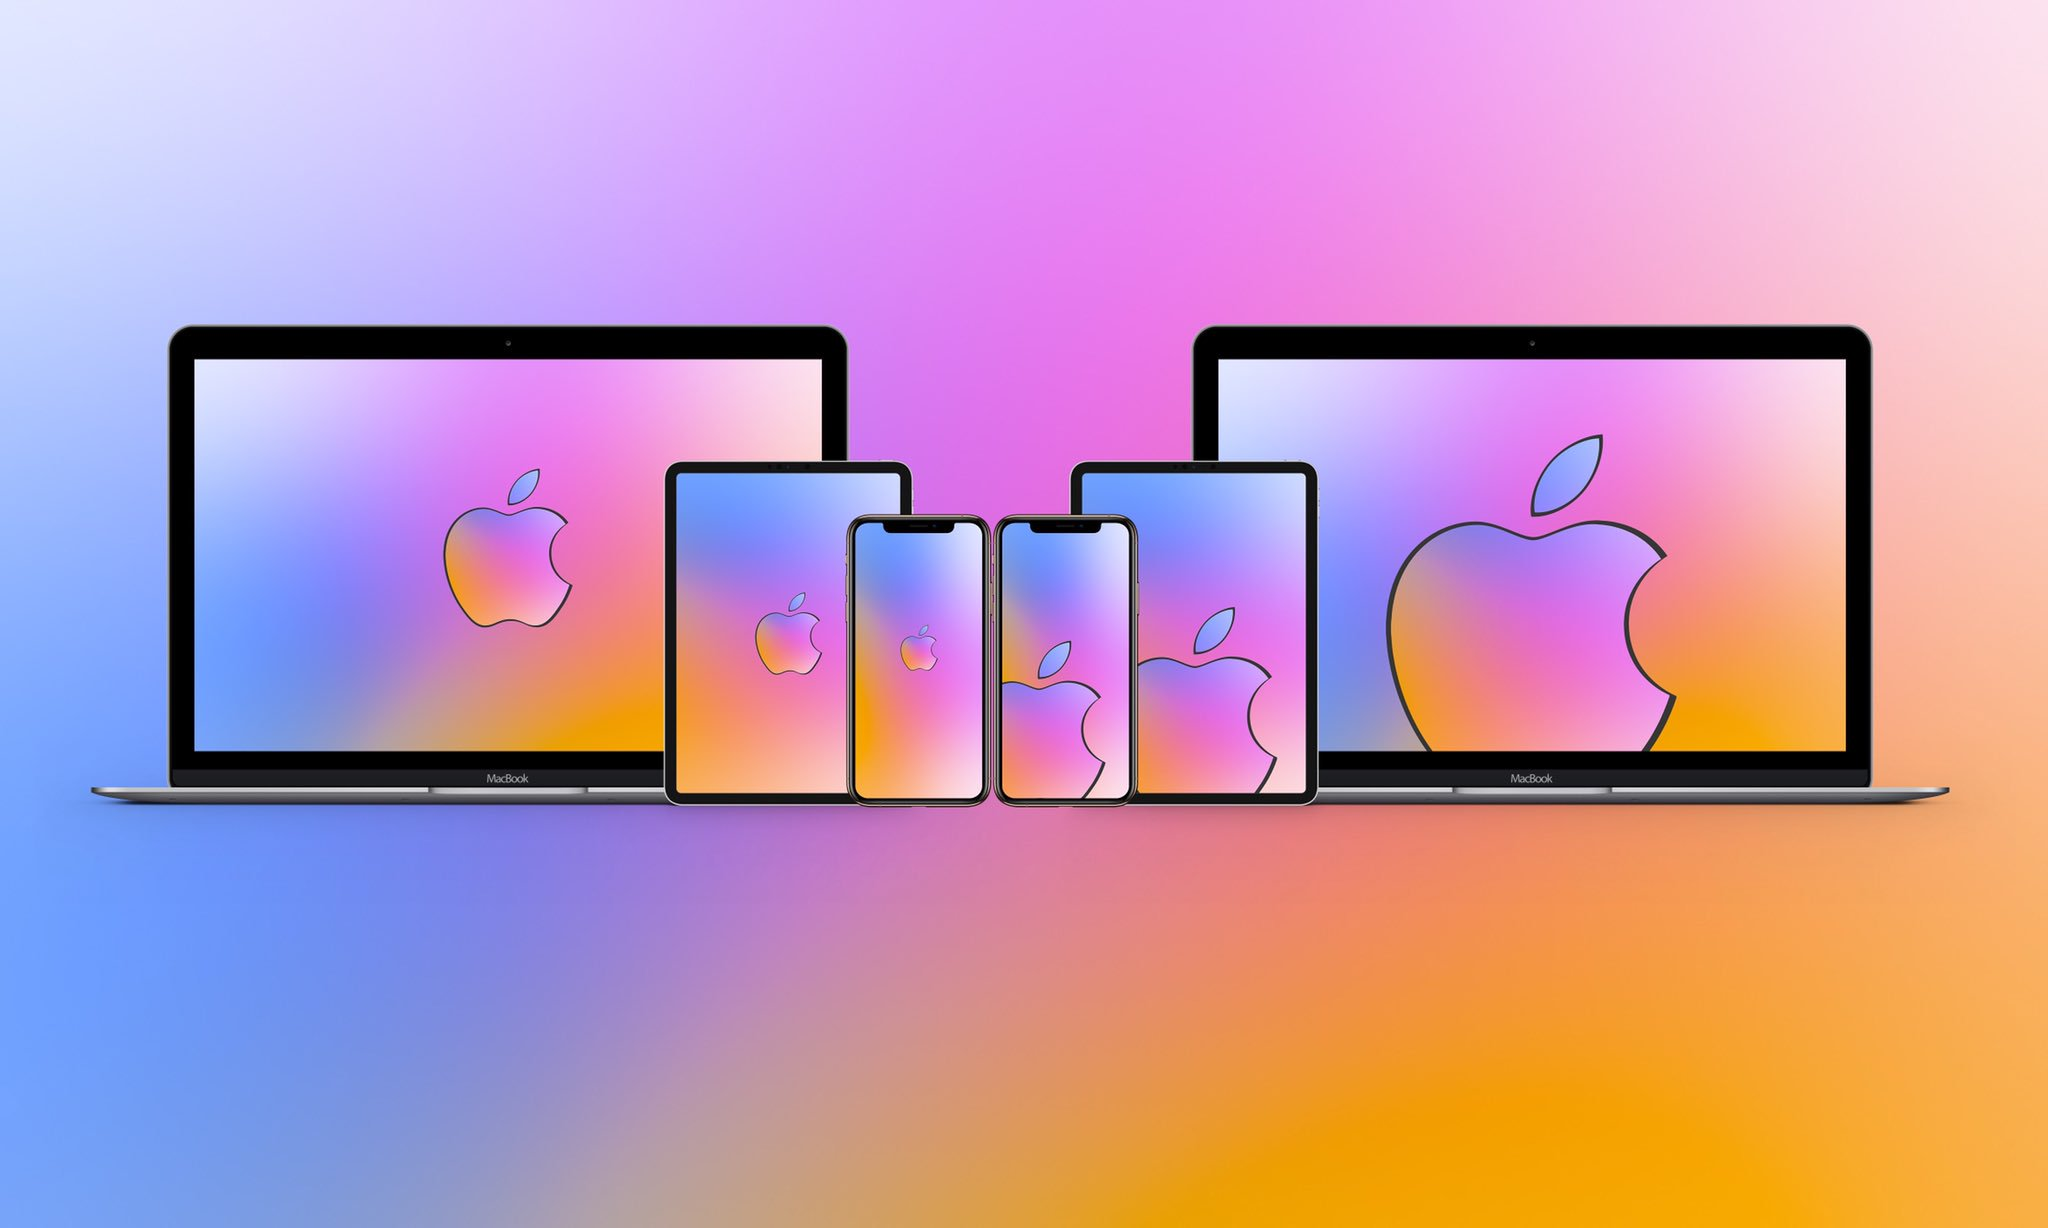 Apple Card wallpapers for iPhone, iPad, and desktop